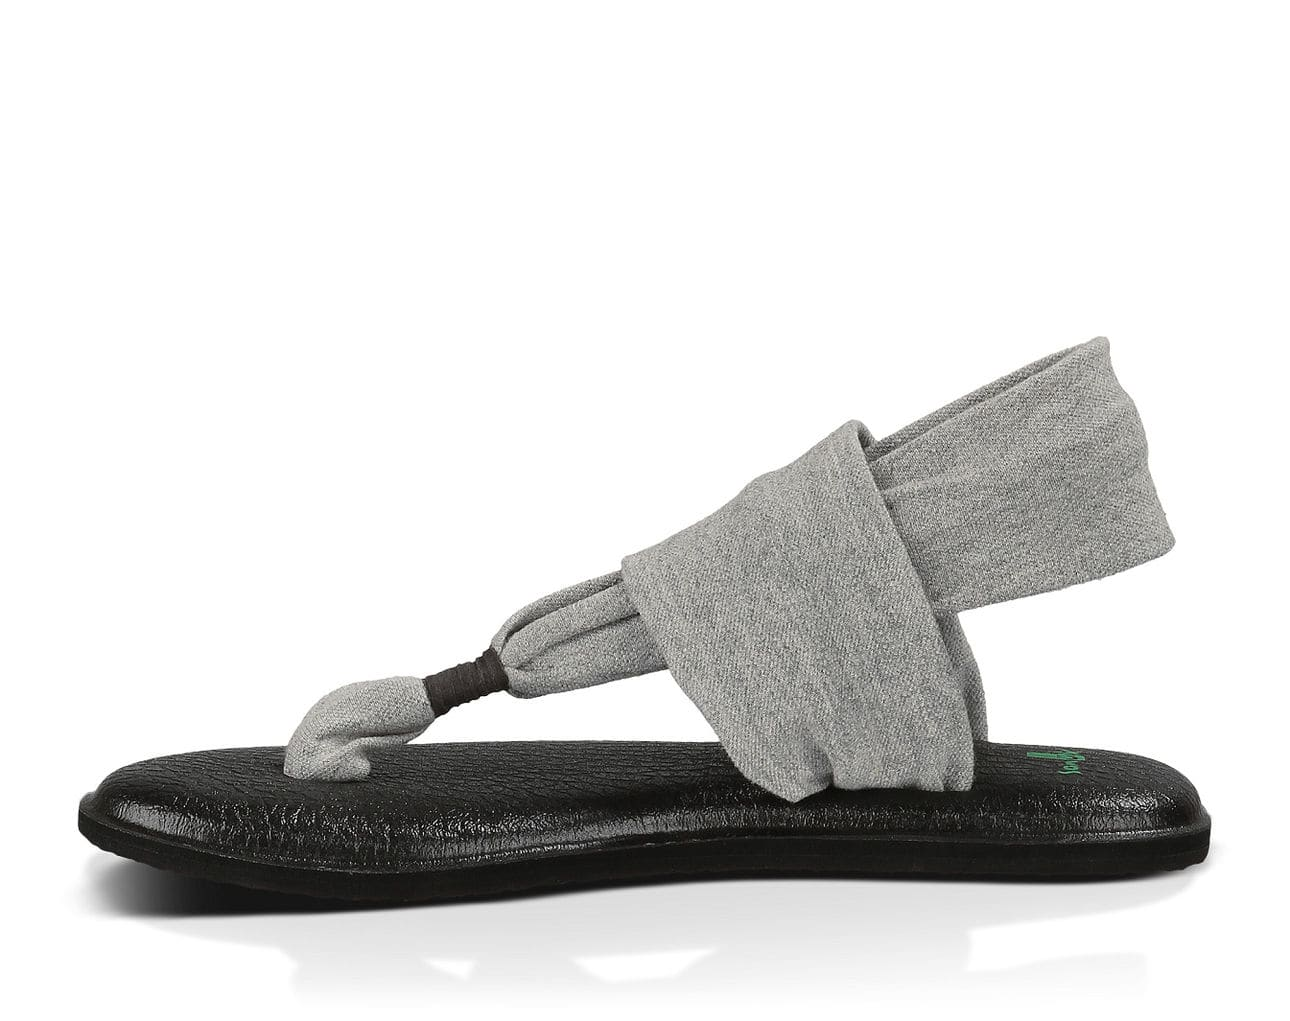 Shop the Sanuk® Men's Sale for our Last-Call shoes and sandals for men. Get discounts on your favorite shoes, sandals, and more on nmuiakbosczpl.ga